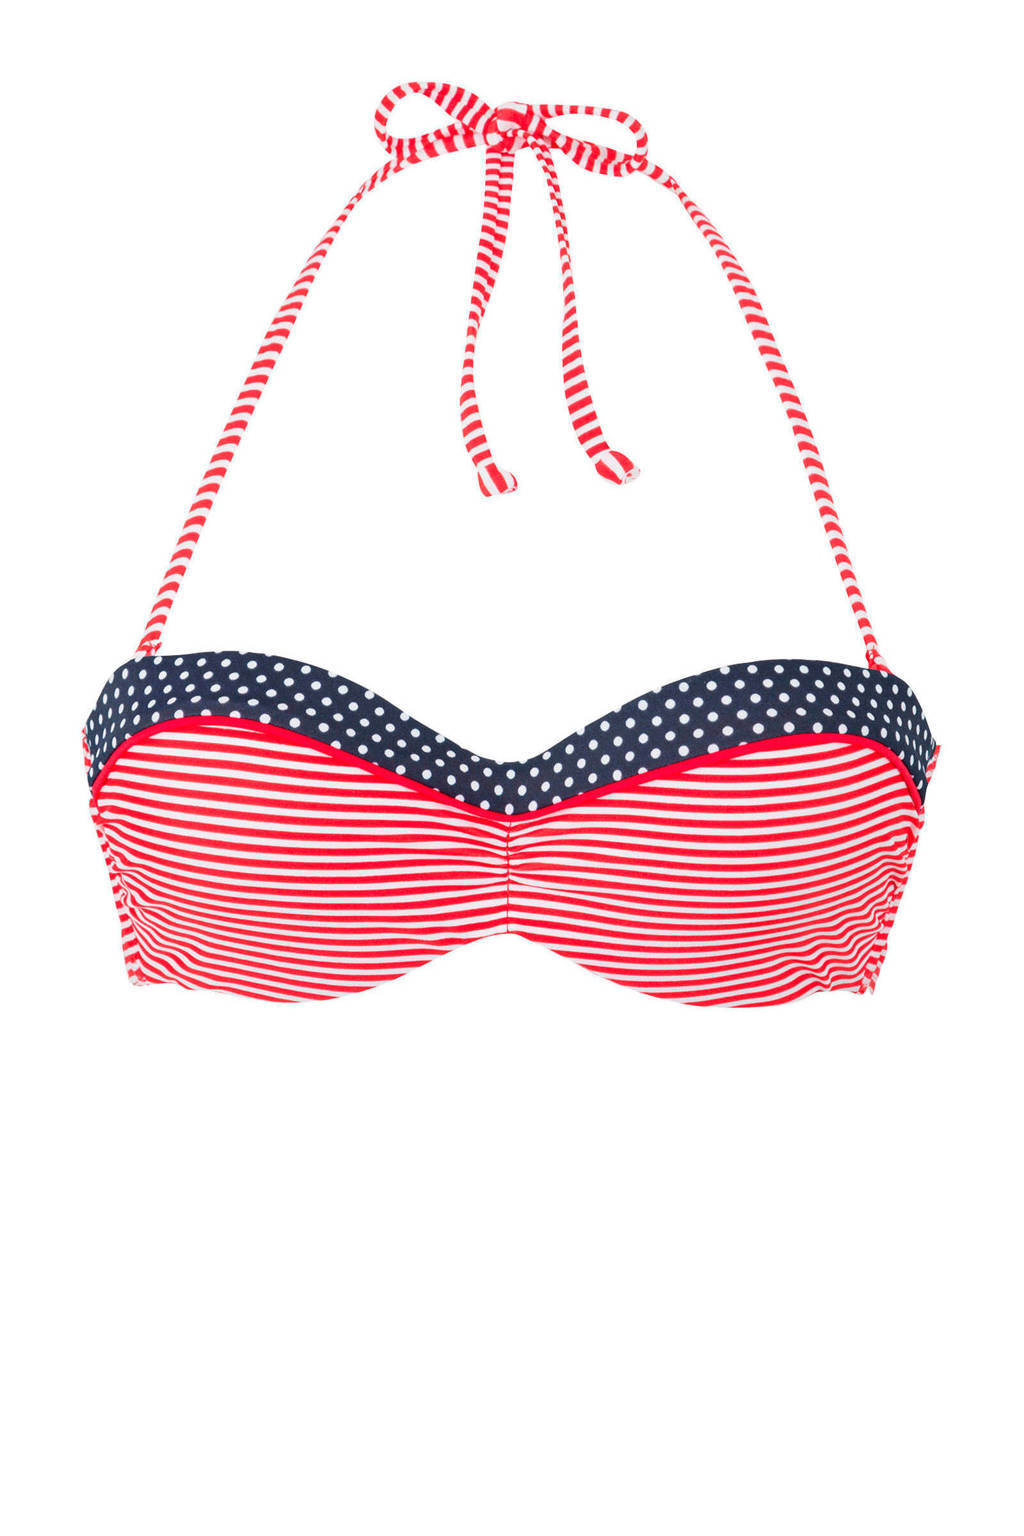 s.Oliver gestreepte strapless beugel bikinitop rood, Rood/wit